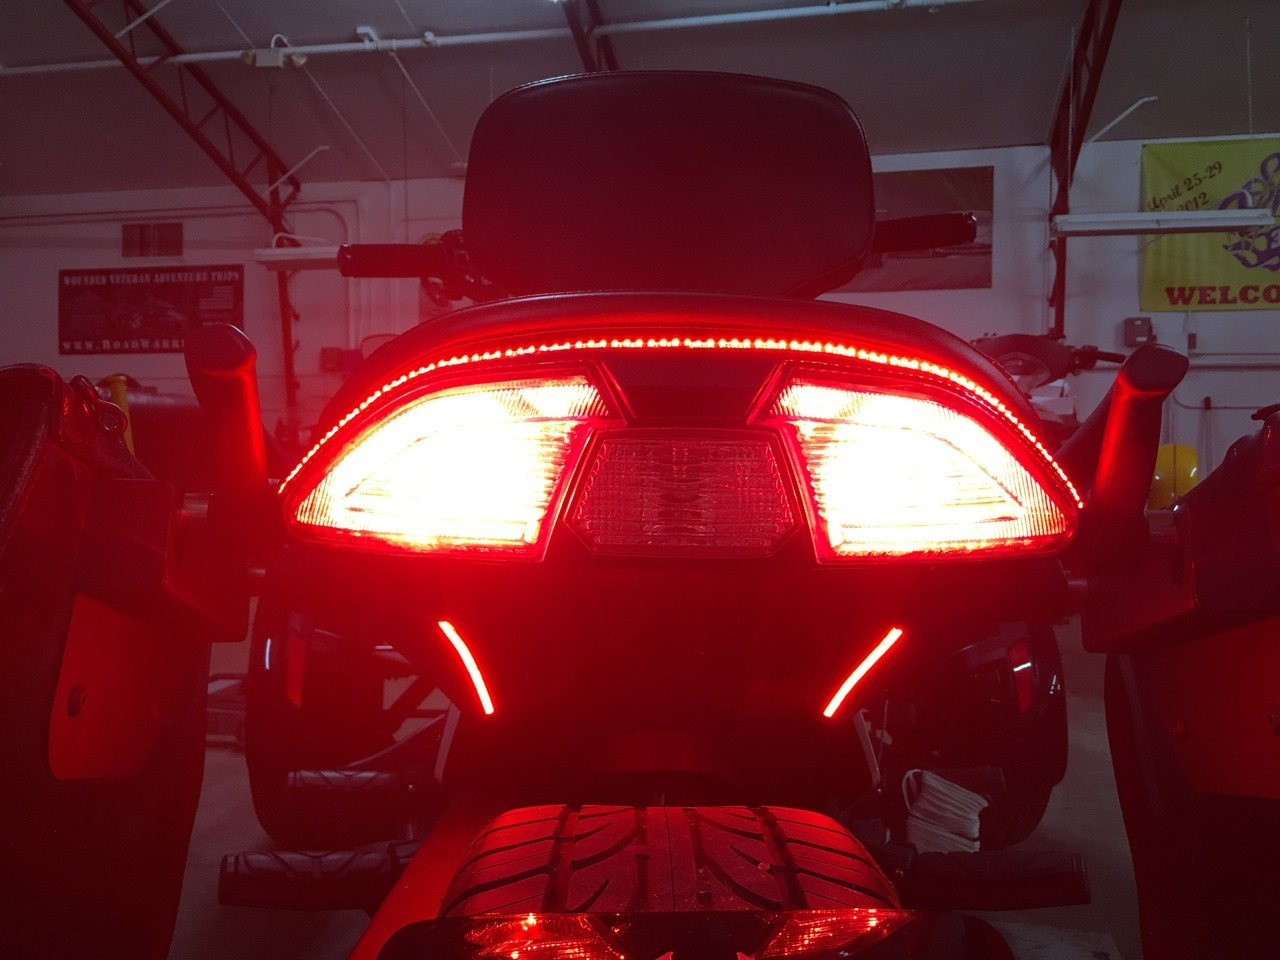 Can-Am Spyder F3 & F3S Rear BRT Lighting Kit - BRAKE/RUN/TURN, Includes STROBE Feature. (SPY-182) Lamonster Approved